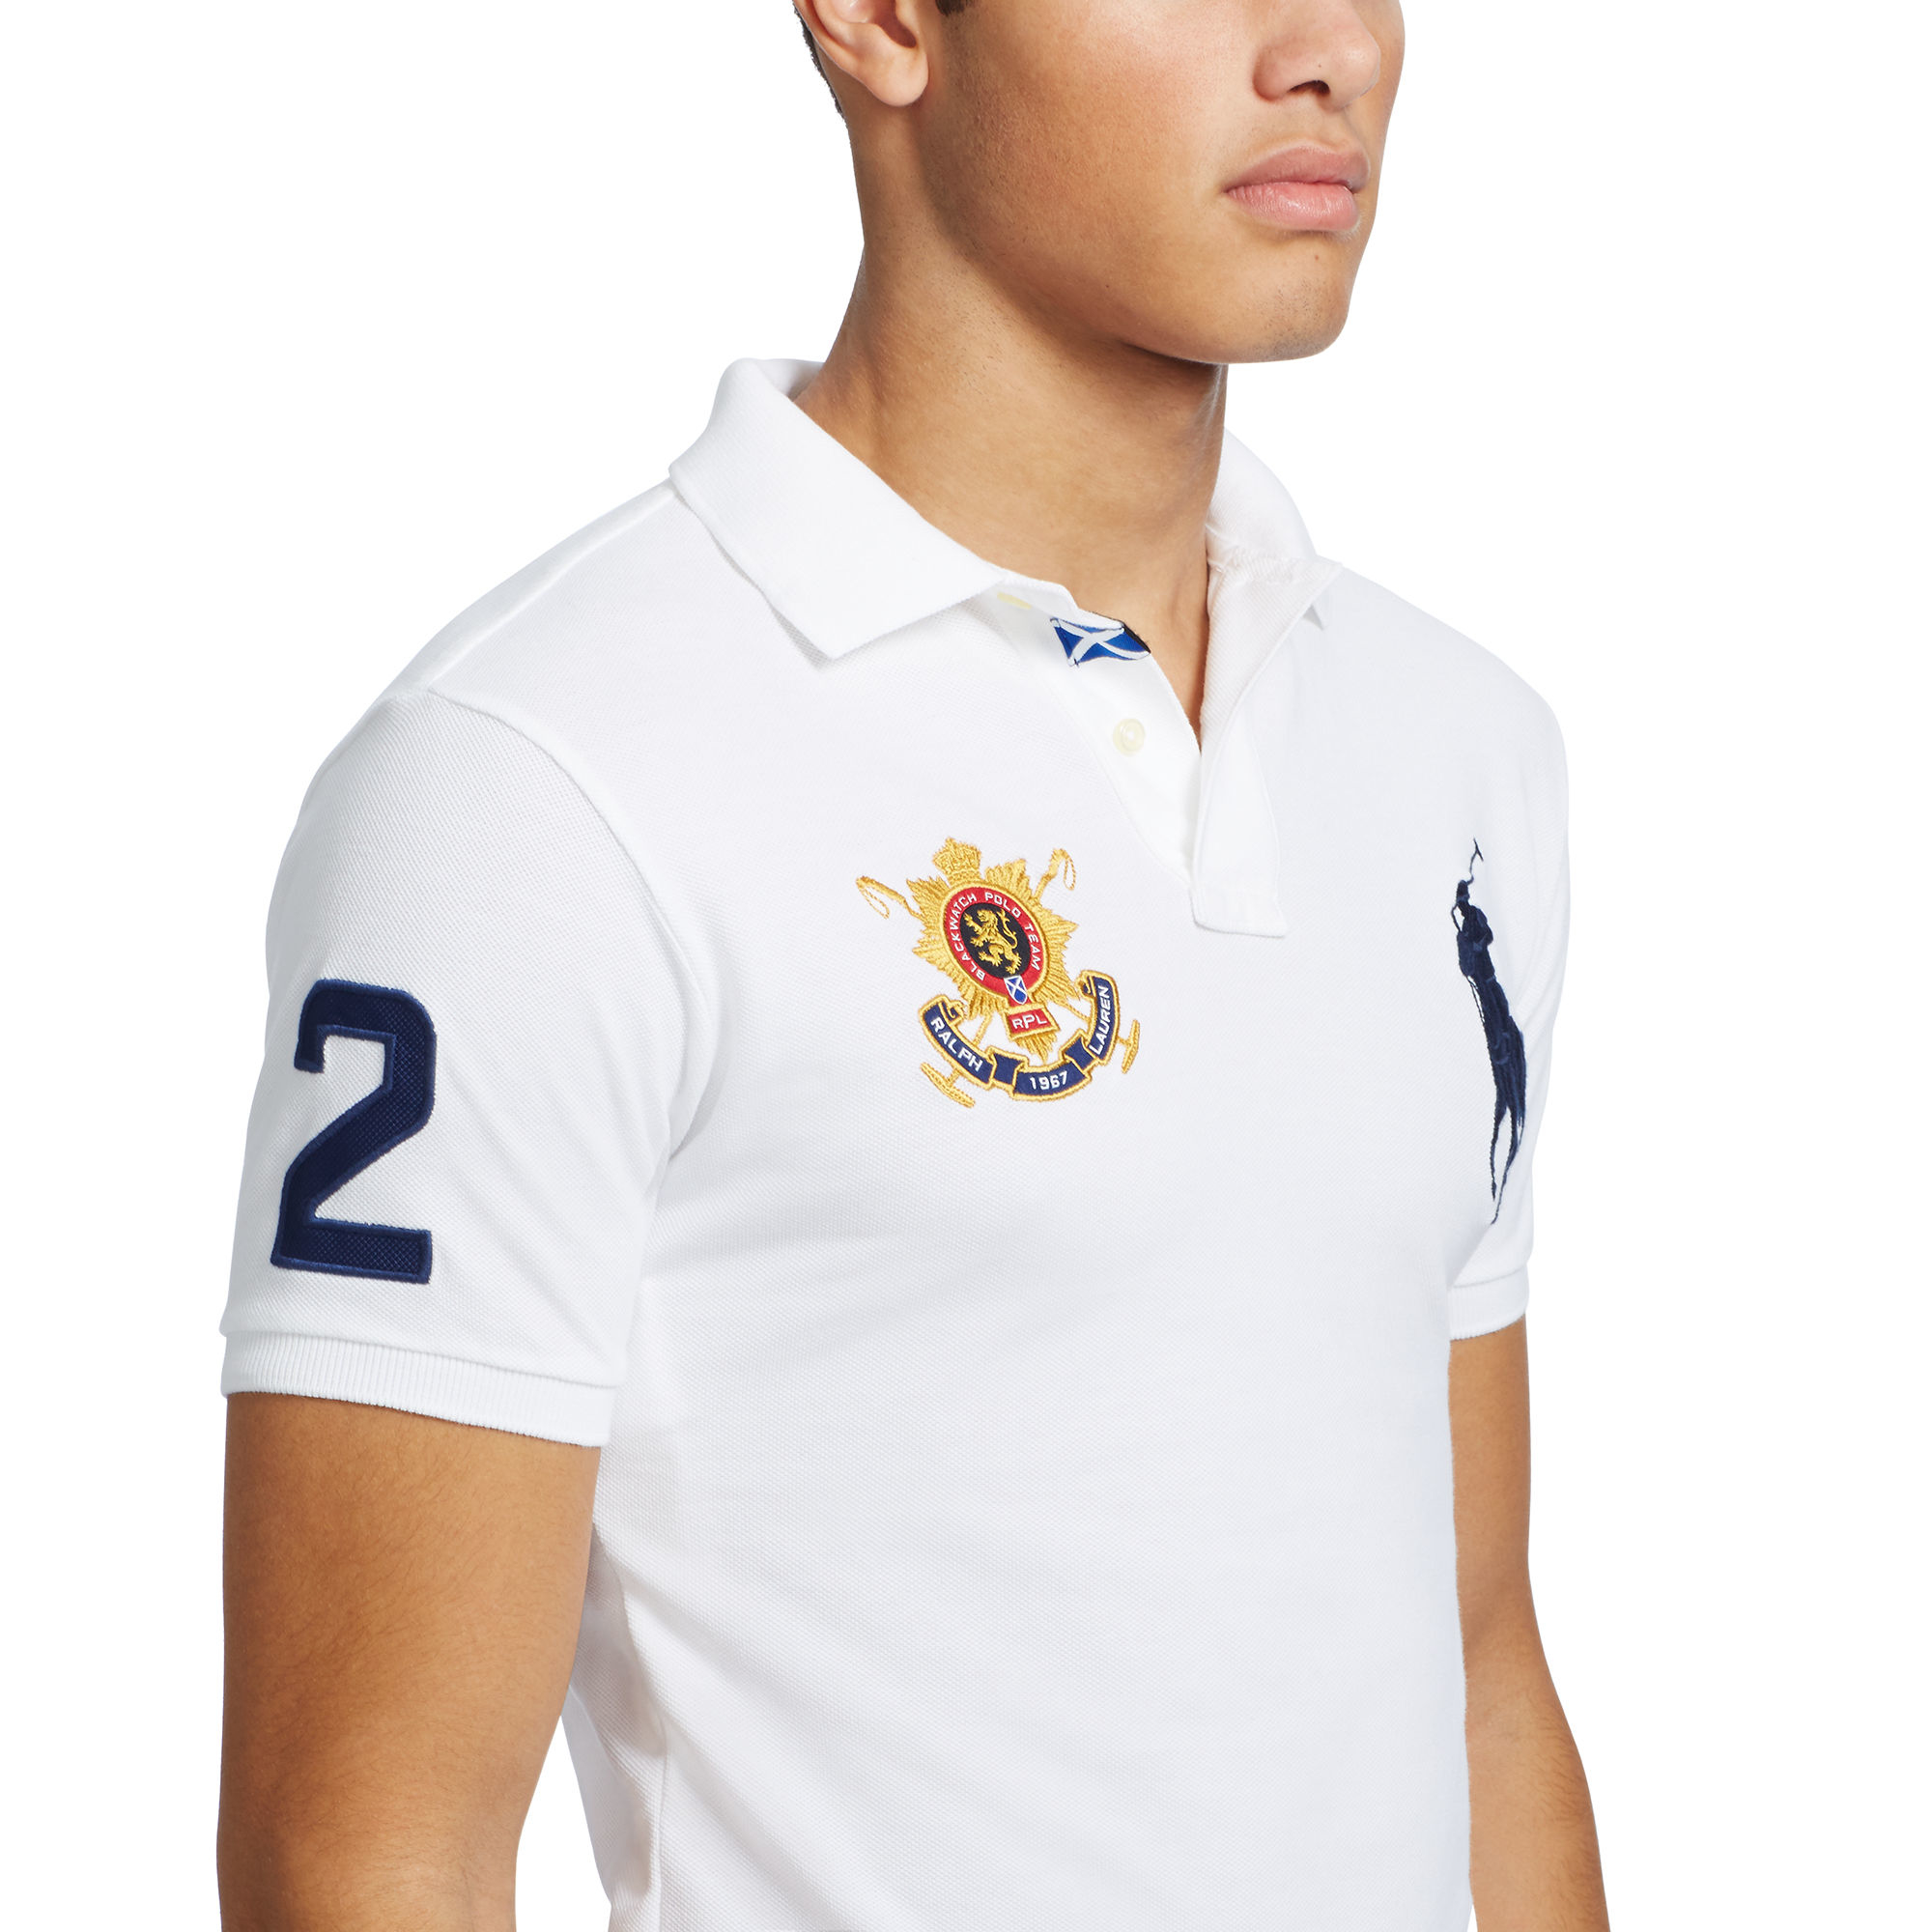 c5f9a8ae Polo Ralph Lauren Blackwatch Custom-fit Polo in White for Men - Lyst